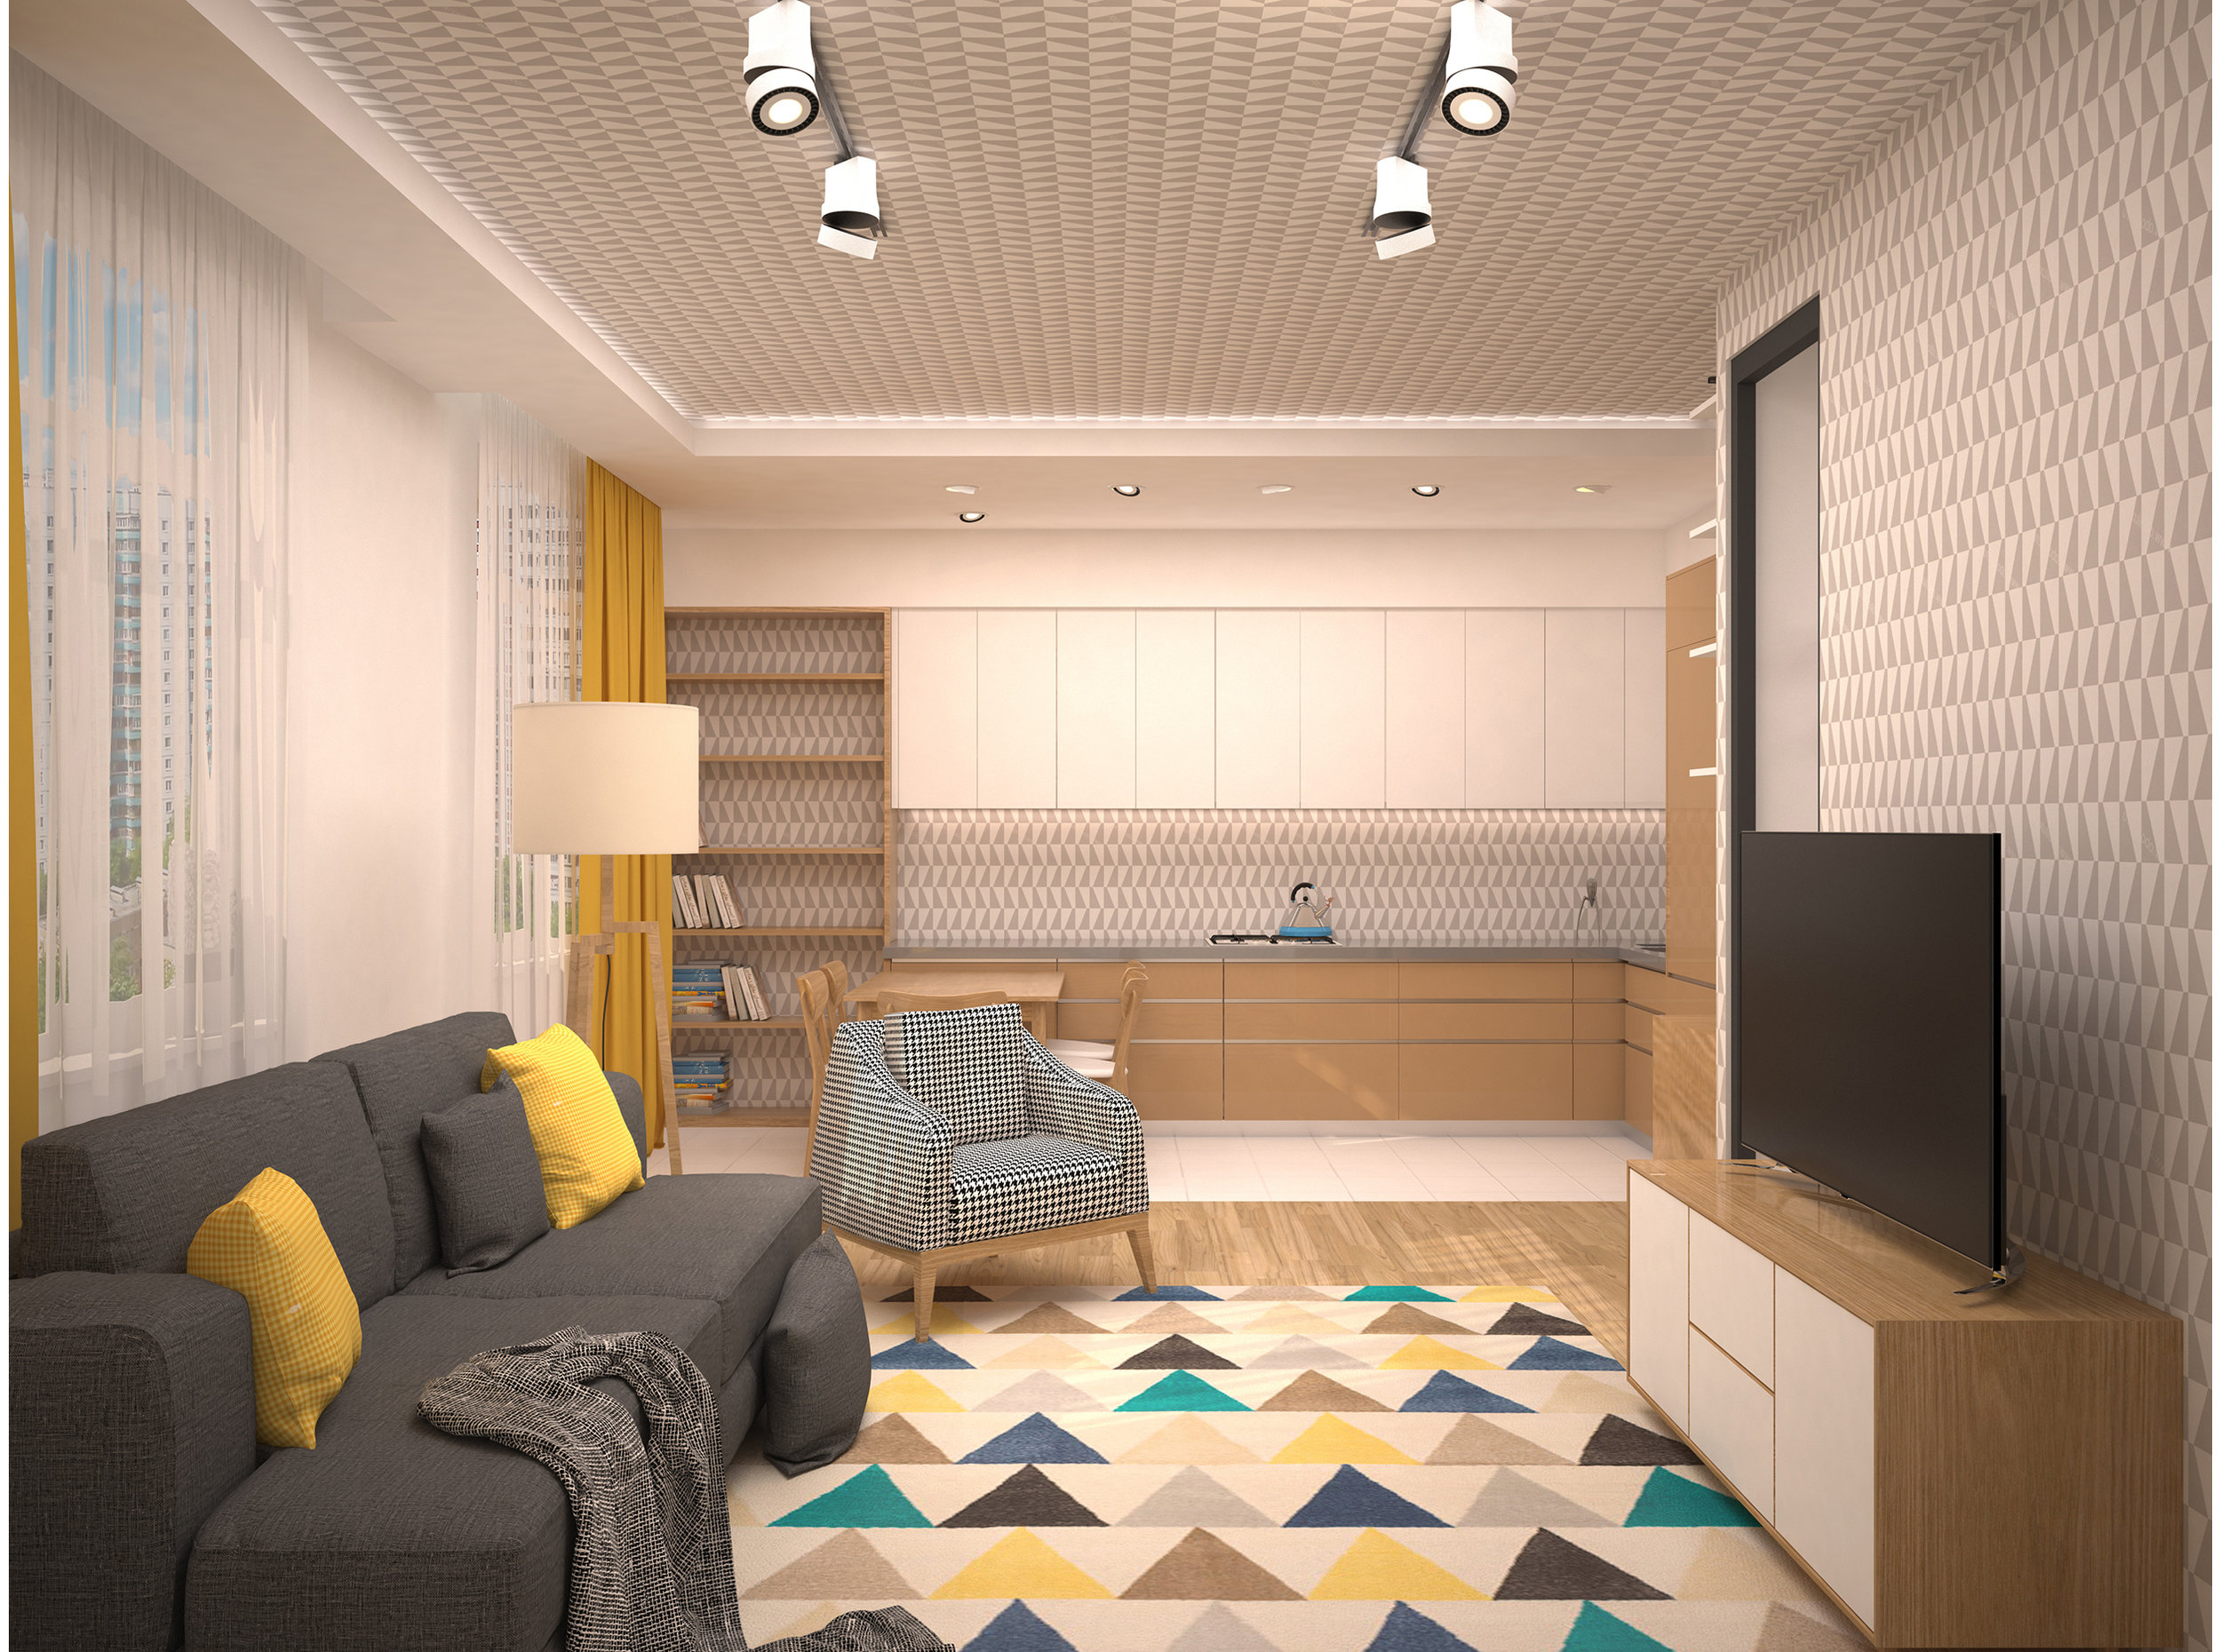 Copy of Scandinavian style kitchen/dining and living room interior